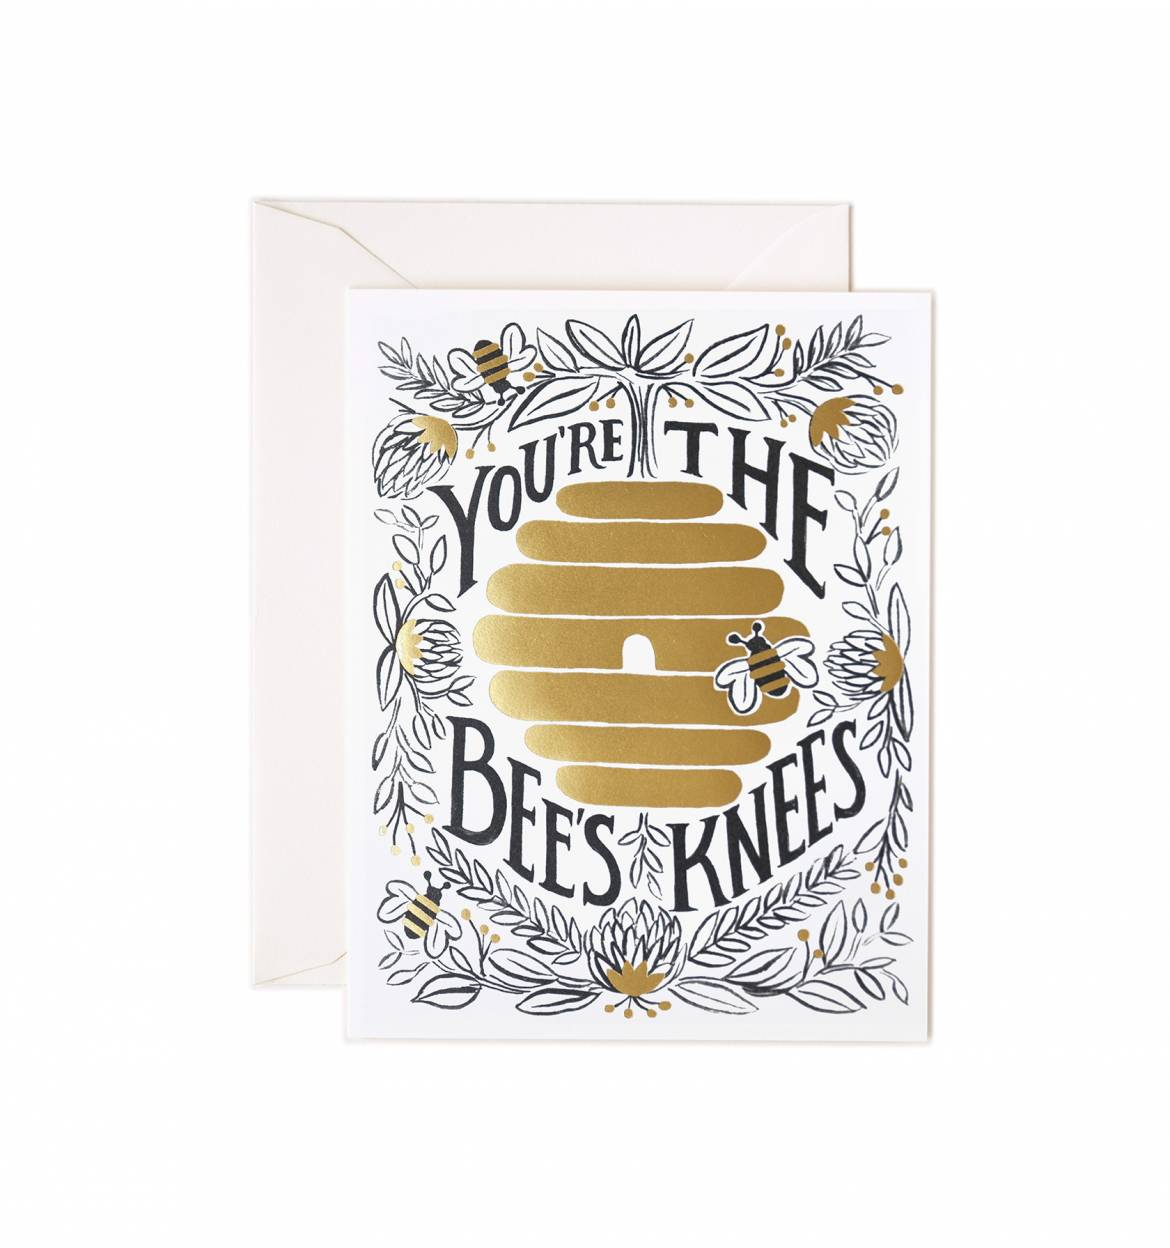 rifle-paper-co-youre-the-bees-knees-greeting-card-01-n_1.jpg